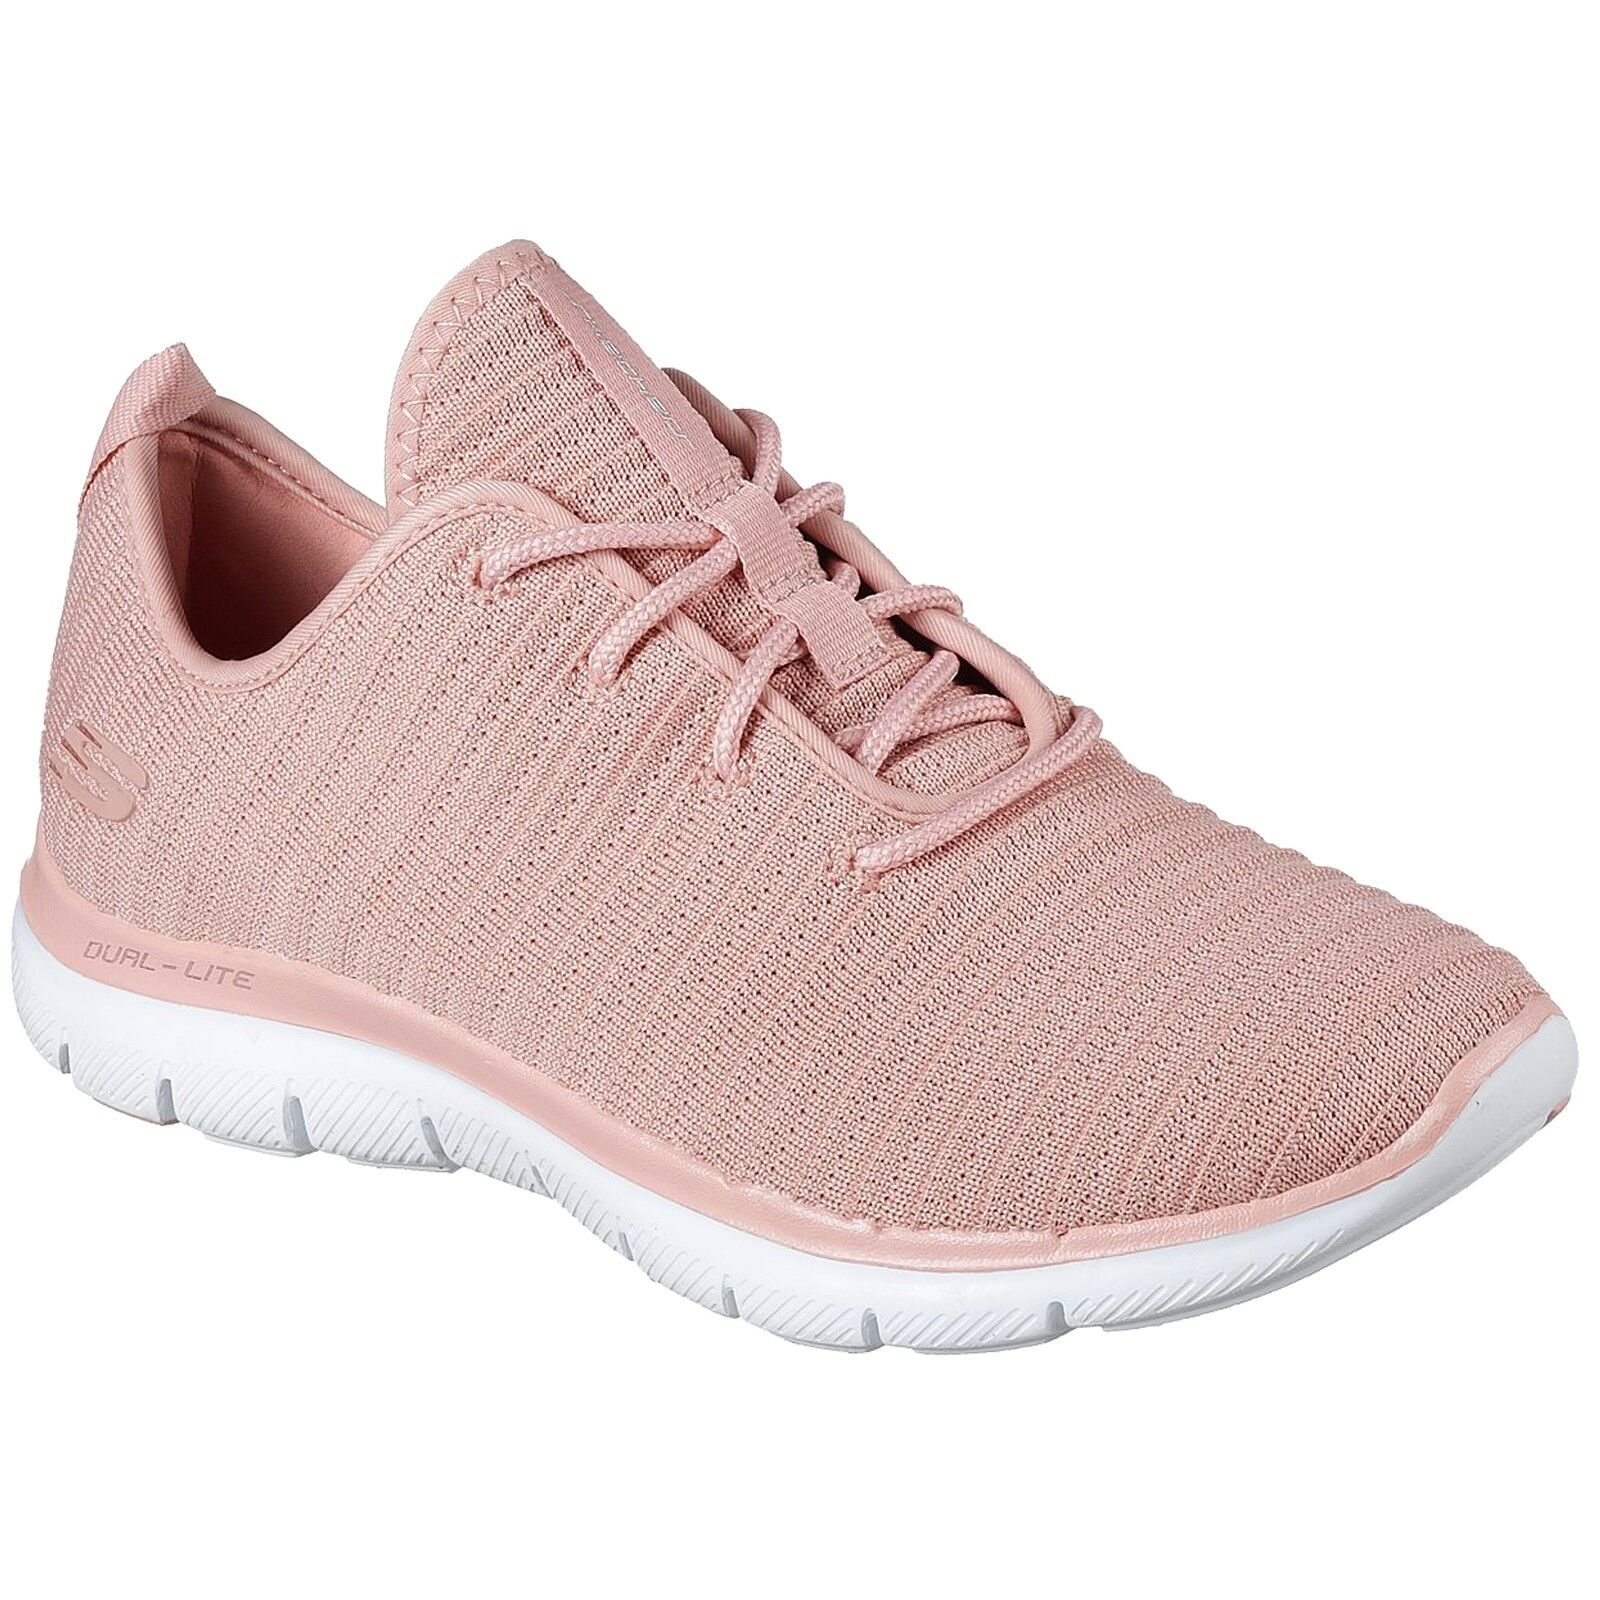 LADIES SKECHERS FLEX APPEAL 2.0 ESTATES ROSE LACE UP Schuhe TRAINERS 12899/ROS